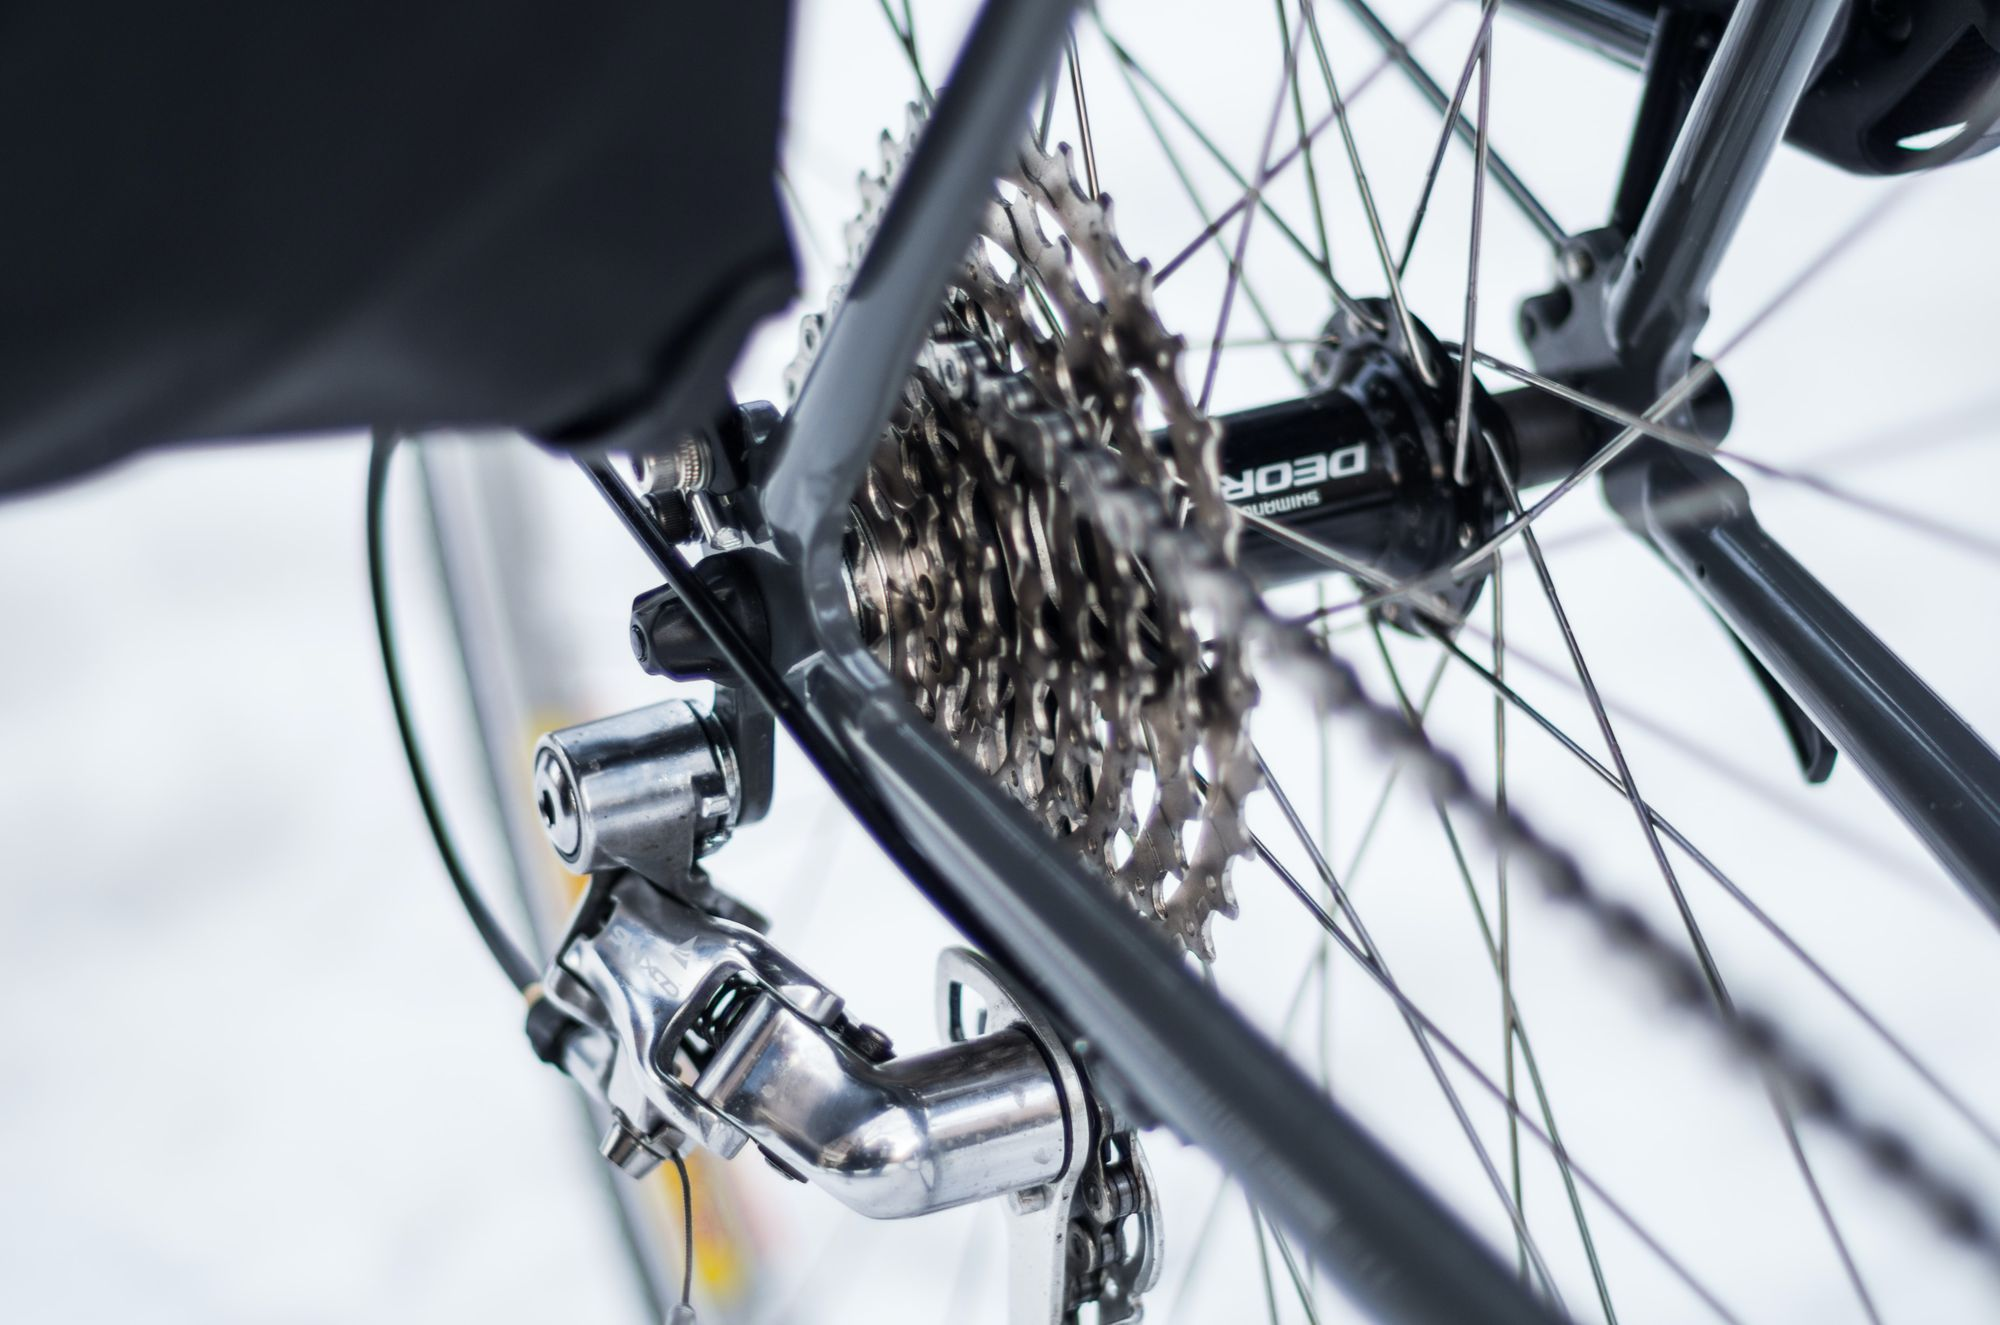 A new cyclist's guide to gears: how to use the gears on your bike